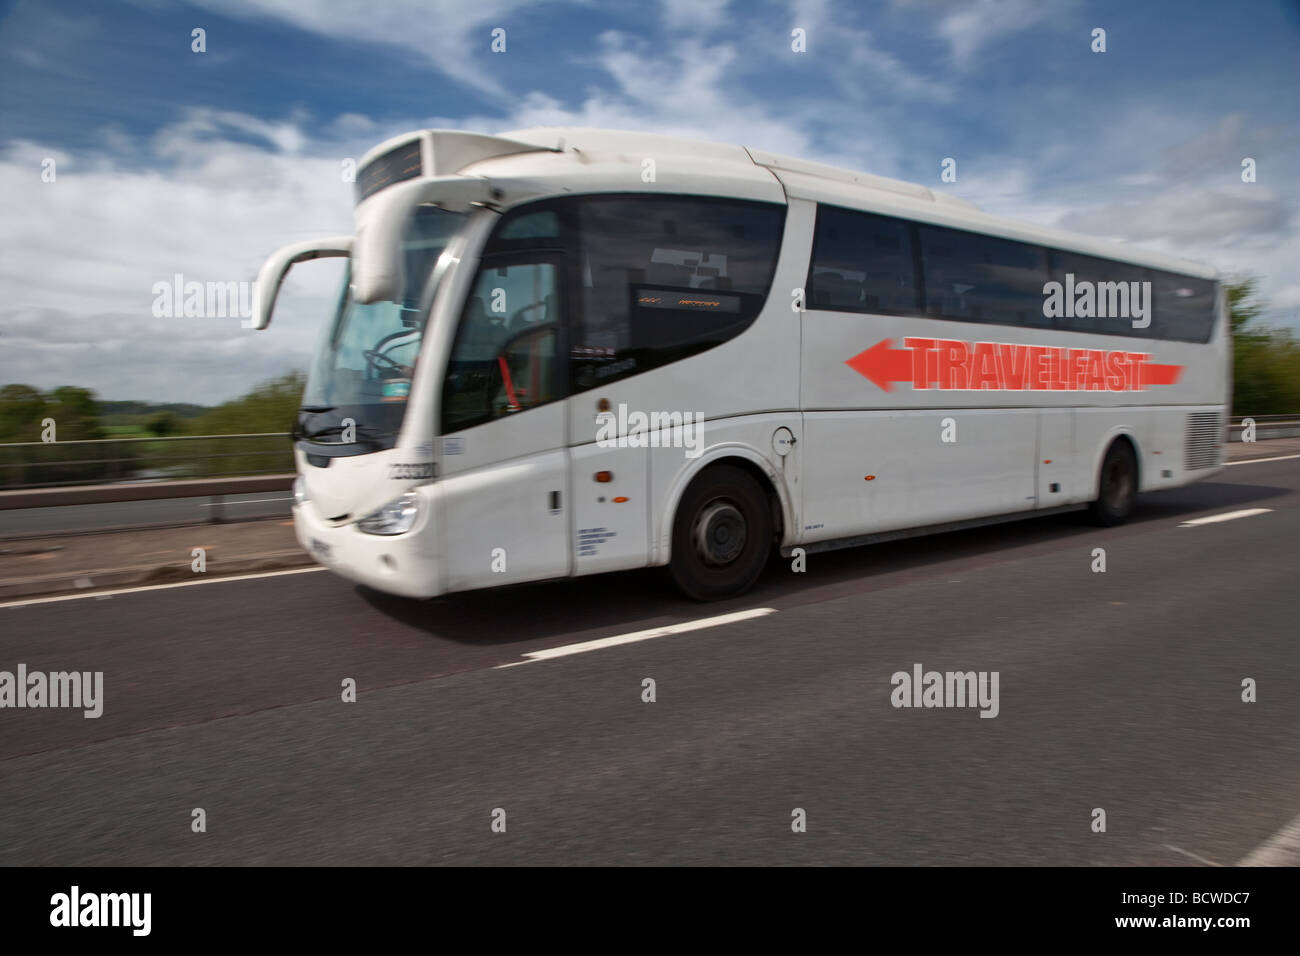 Modern coach bus (fictitious company) on road in summer. - Stock Image